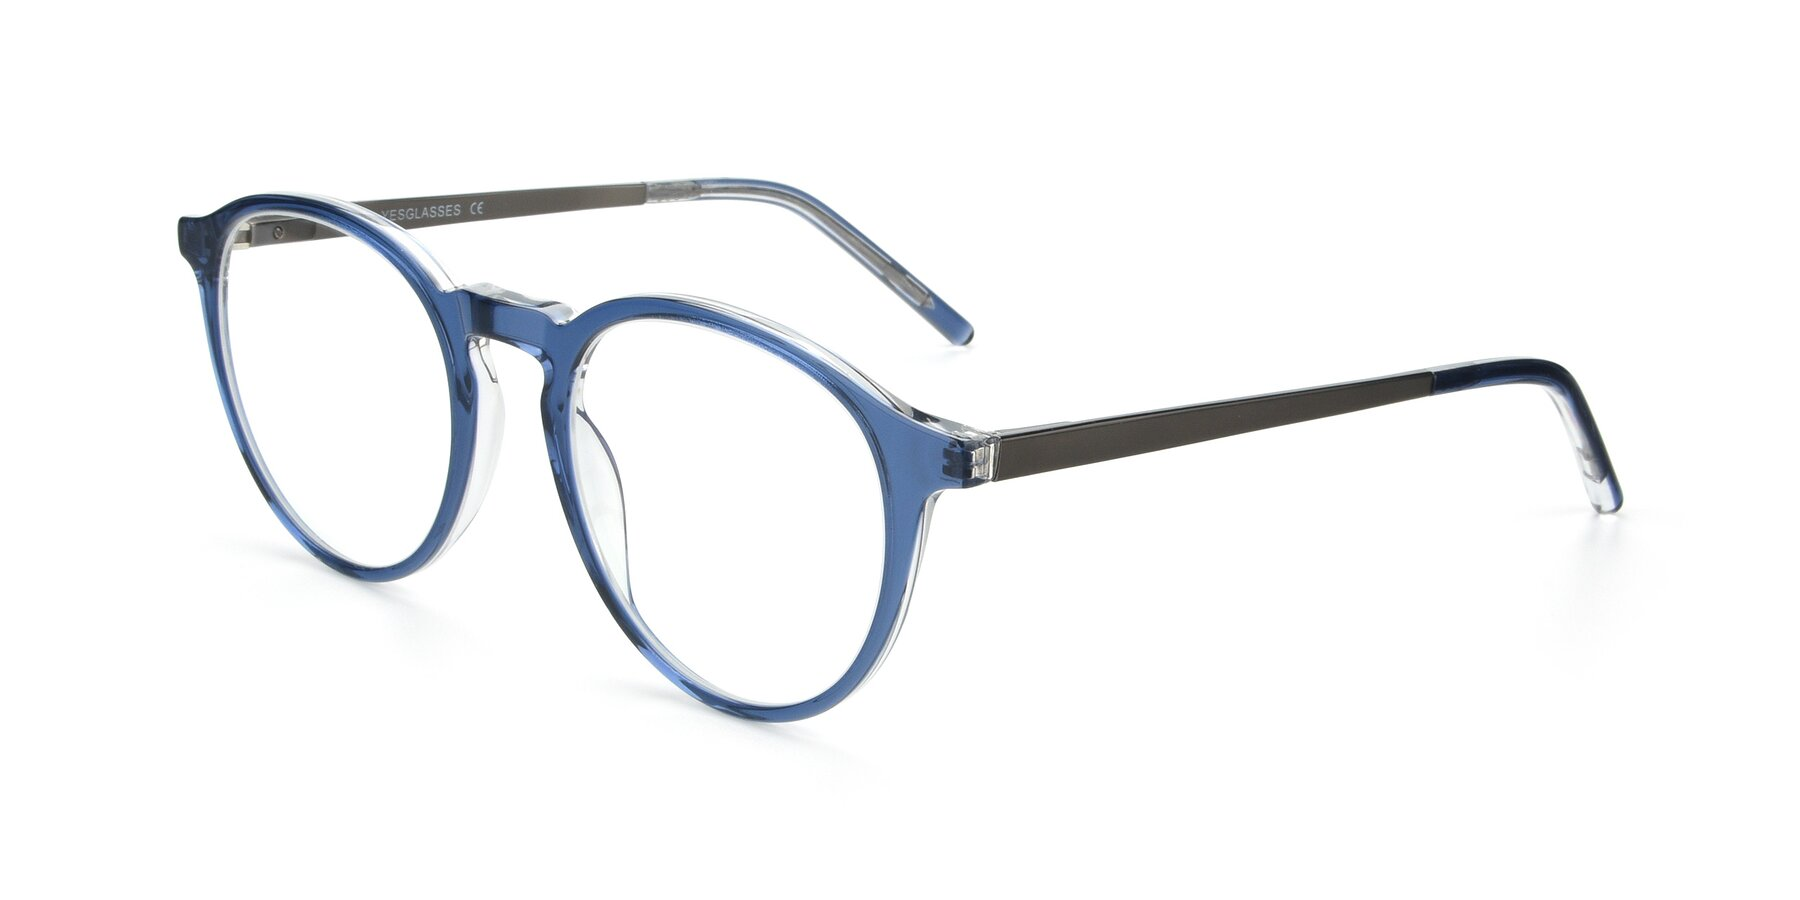 Angle of 17450 in Blue with Clear Eyeglass Lenses